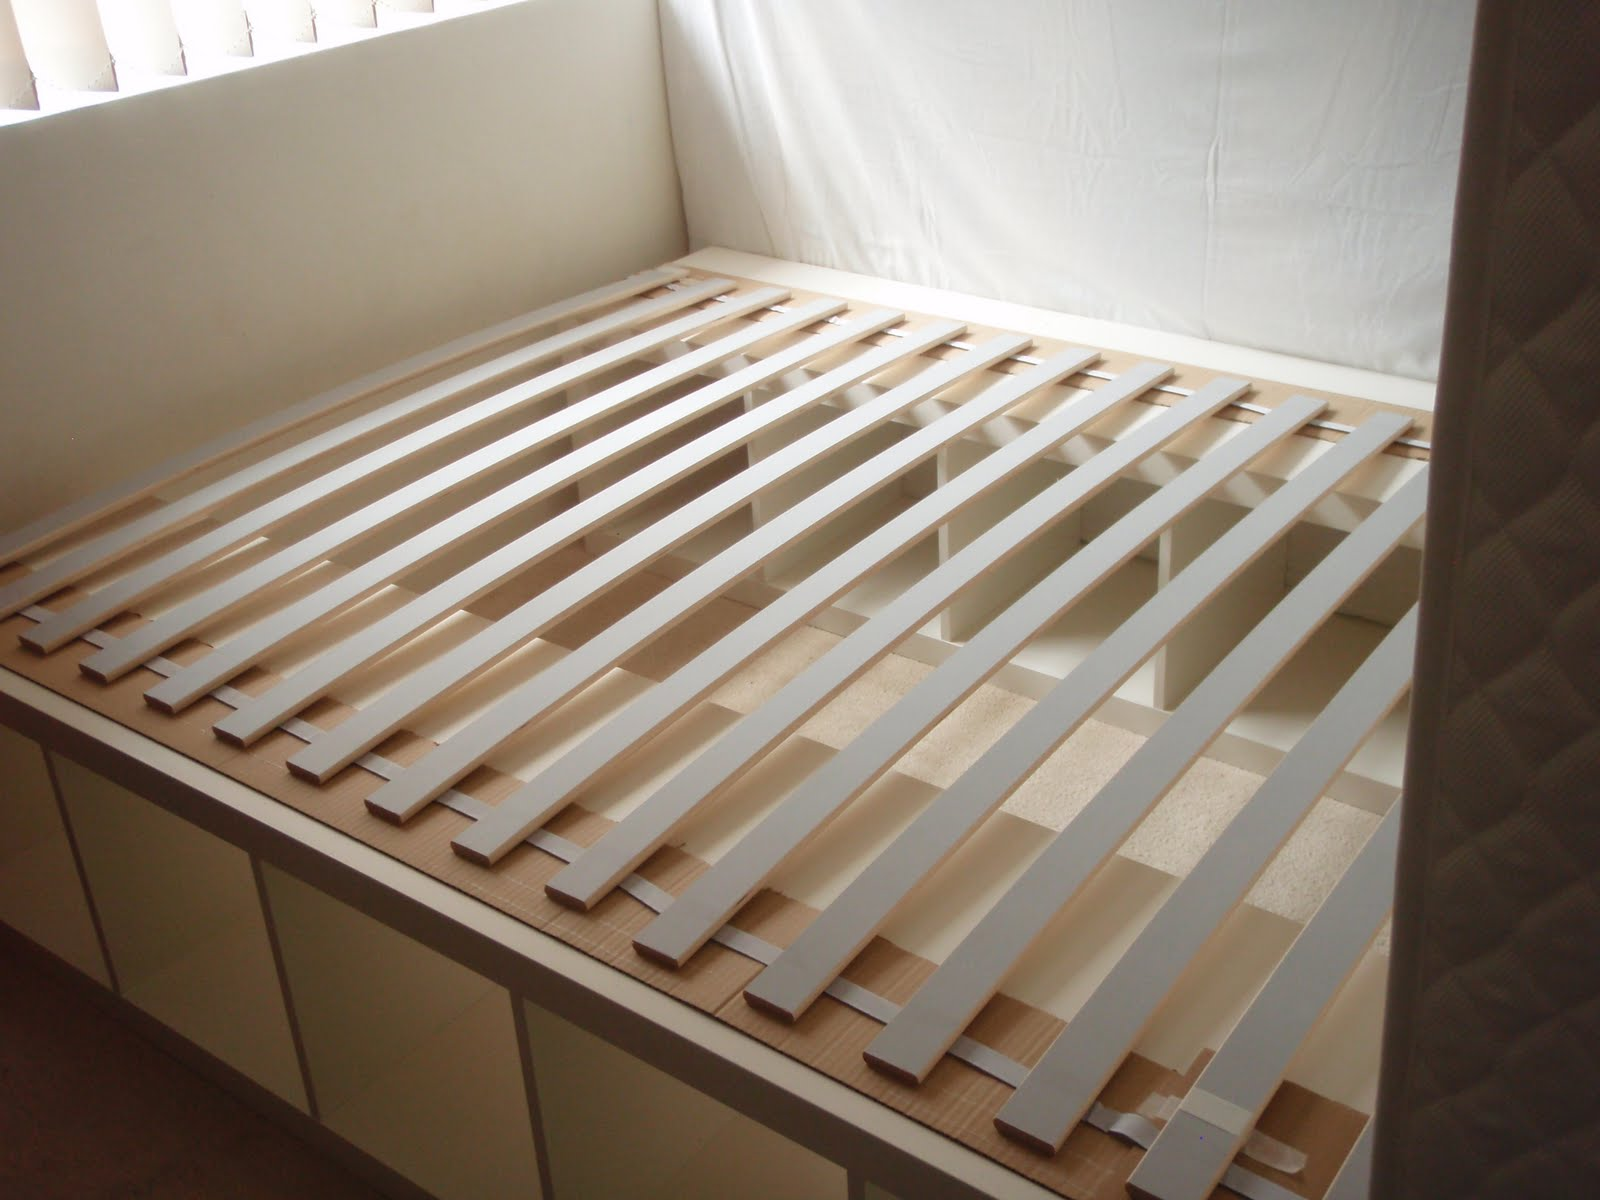 also the bed slats are held together with fabric strip to keep them evenly spaced this image shows it clearly though the bedframe here is